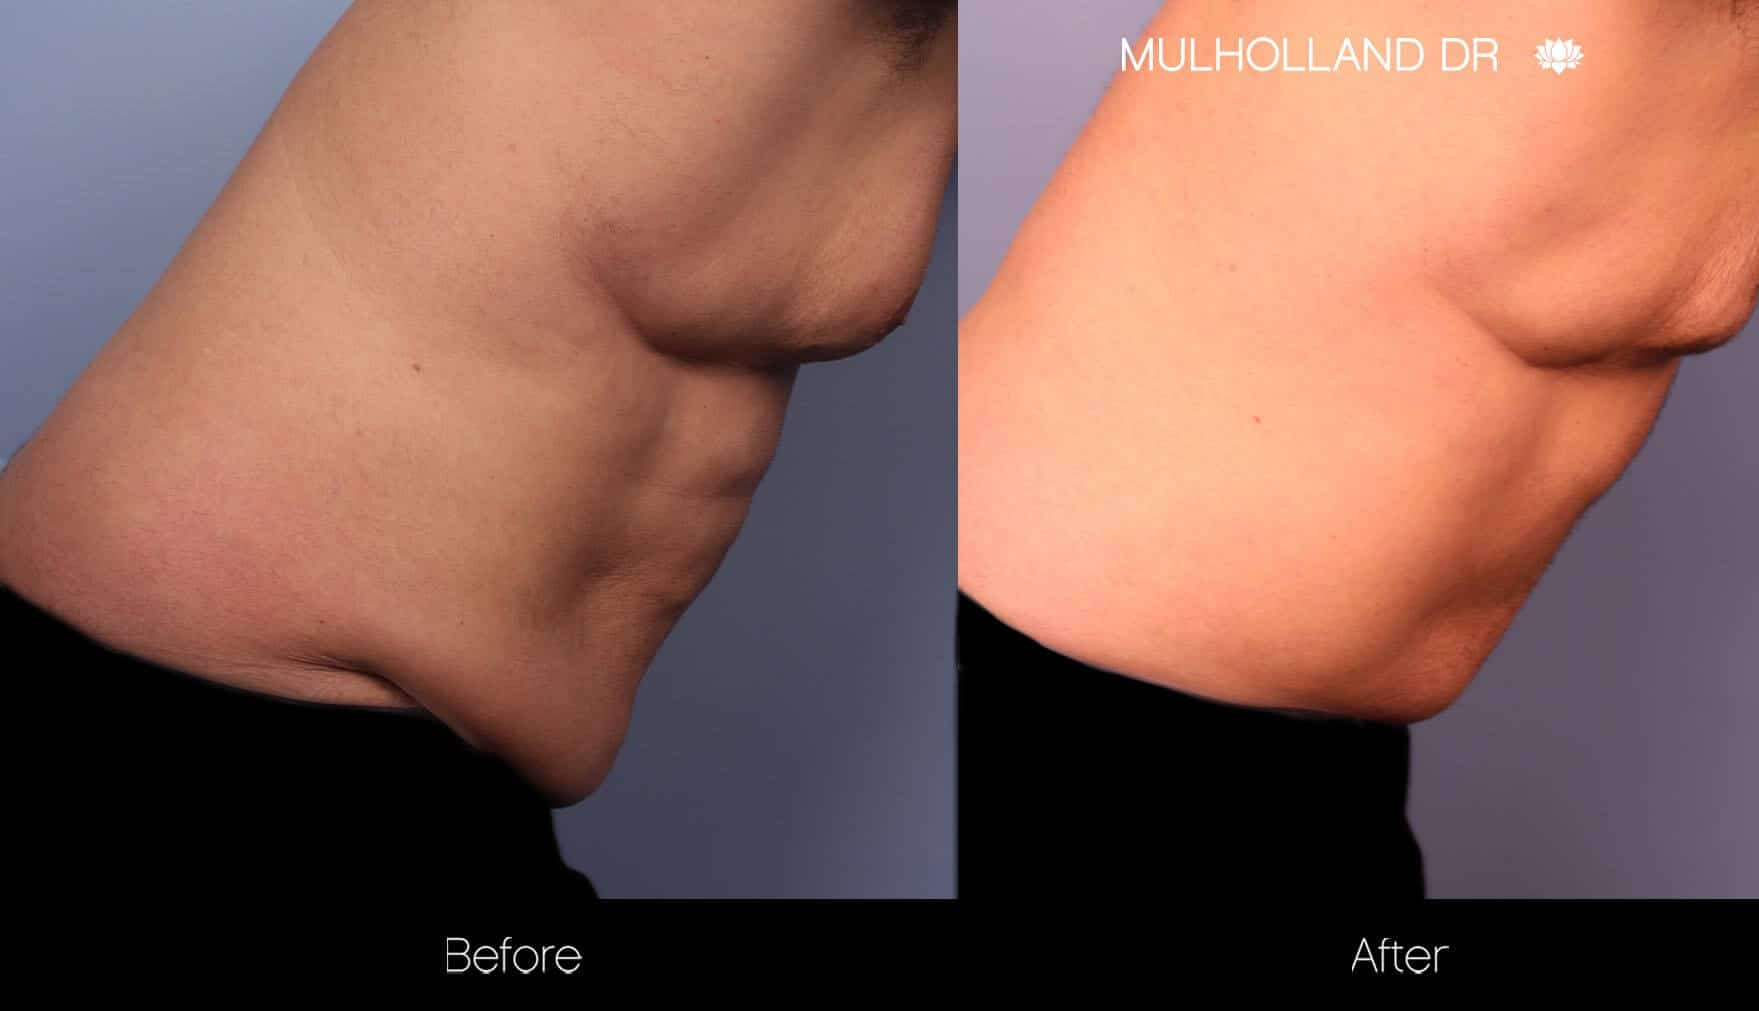 aAbdomen Liposuction - Before and After Gallery - Patient Photo 13